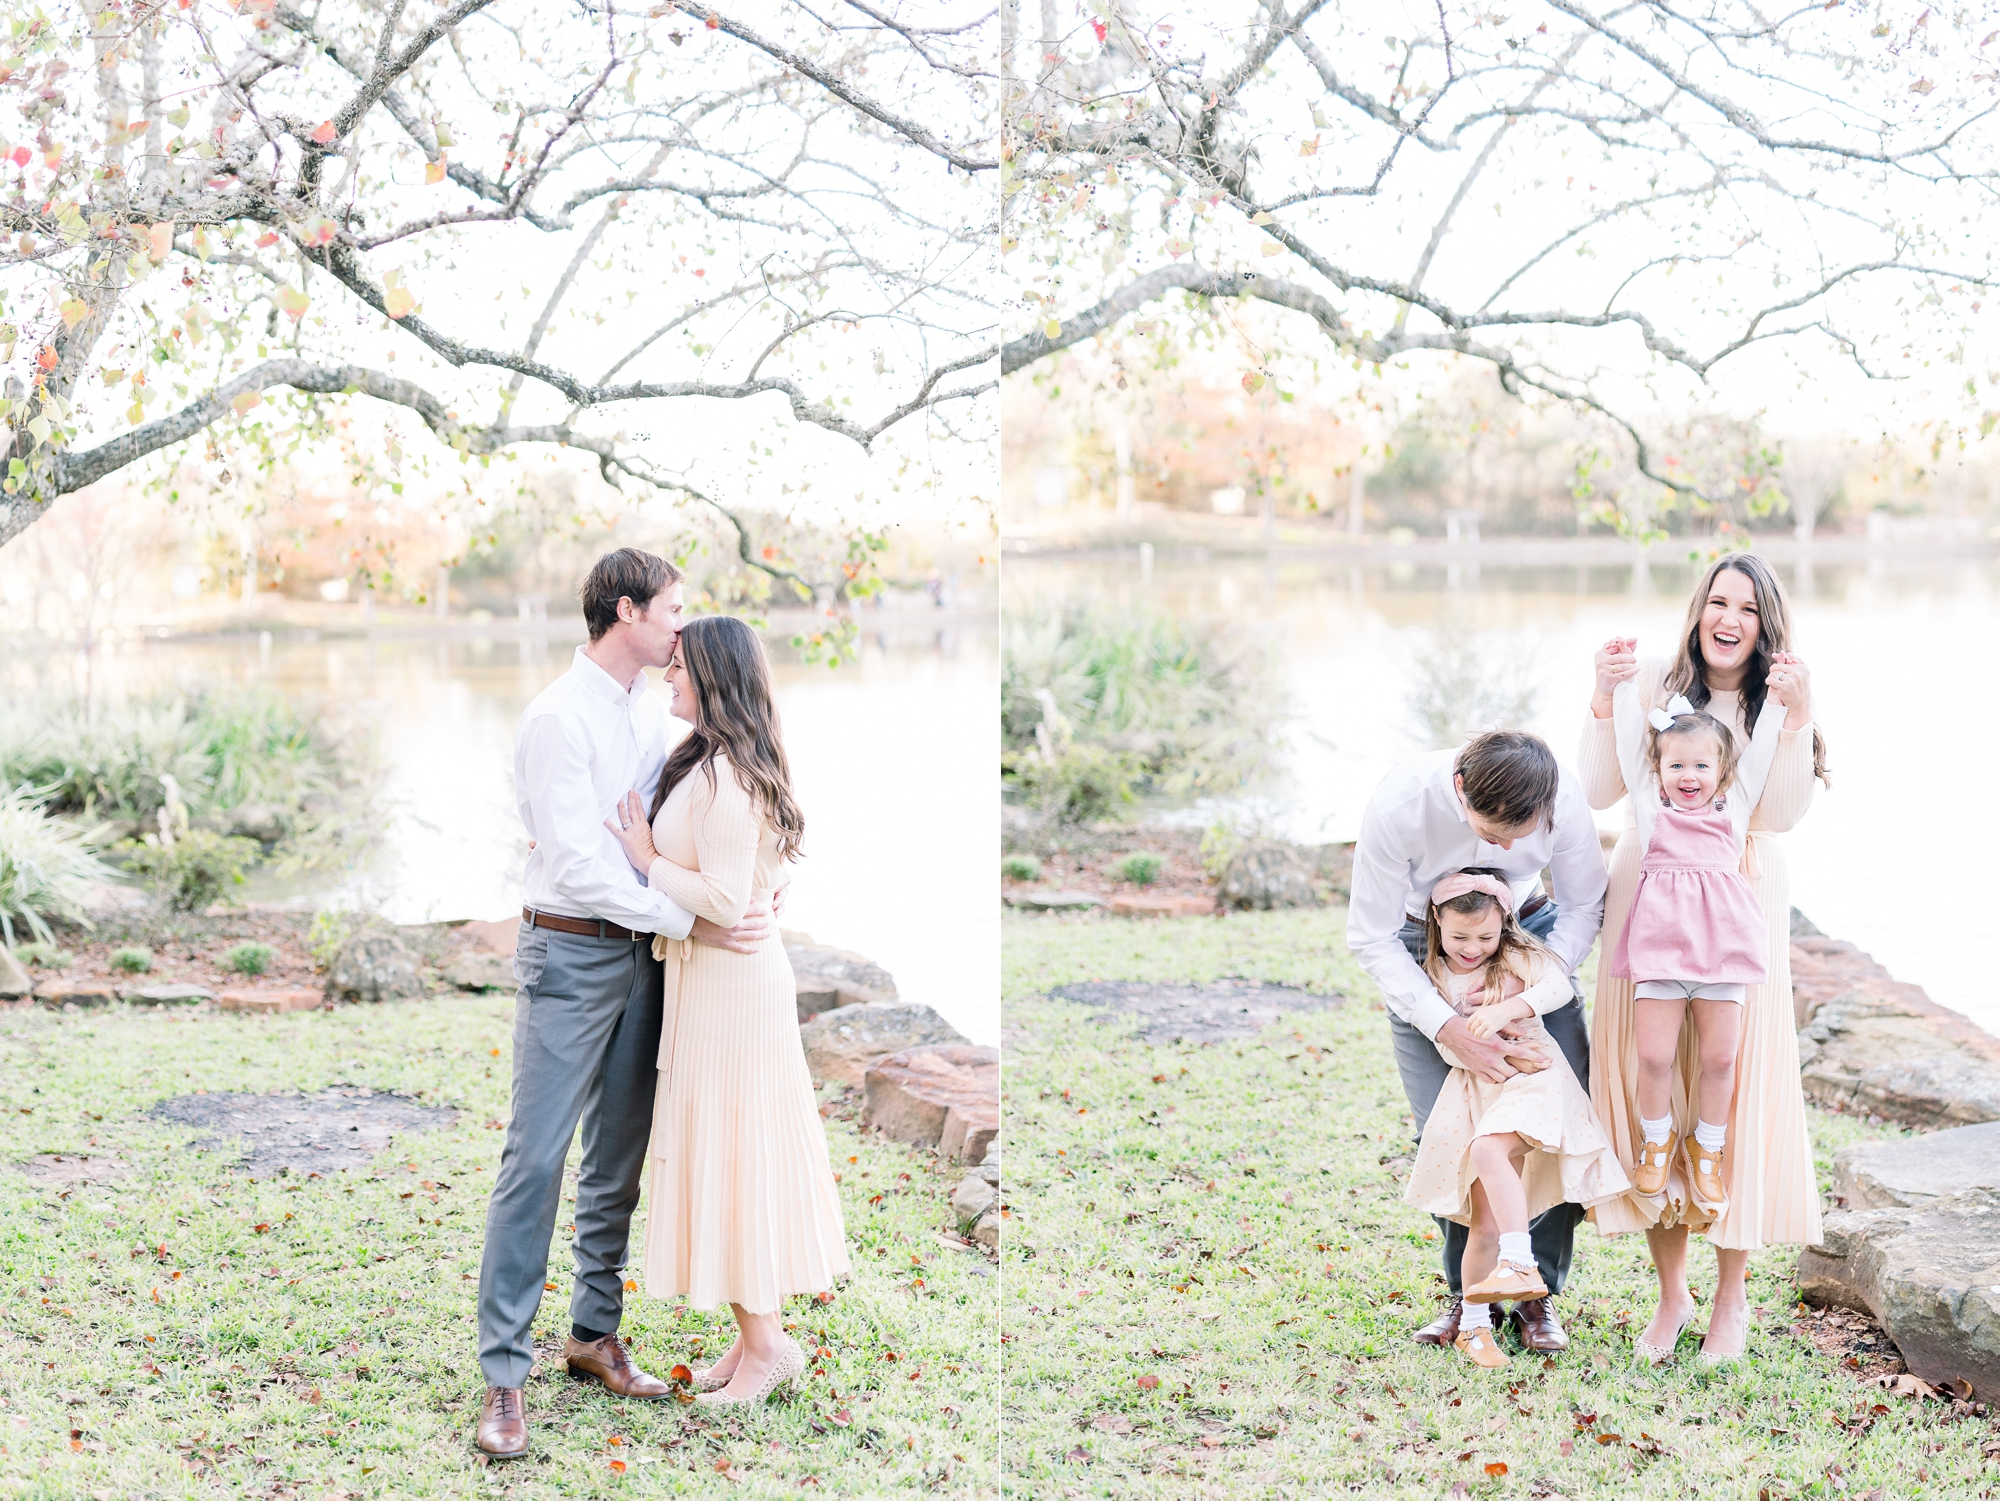 Photos of parents together and parents with two children near water at McKinney, TX park. Photos by Aimee Hamilton Photography.